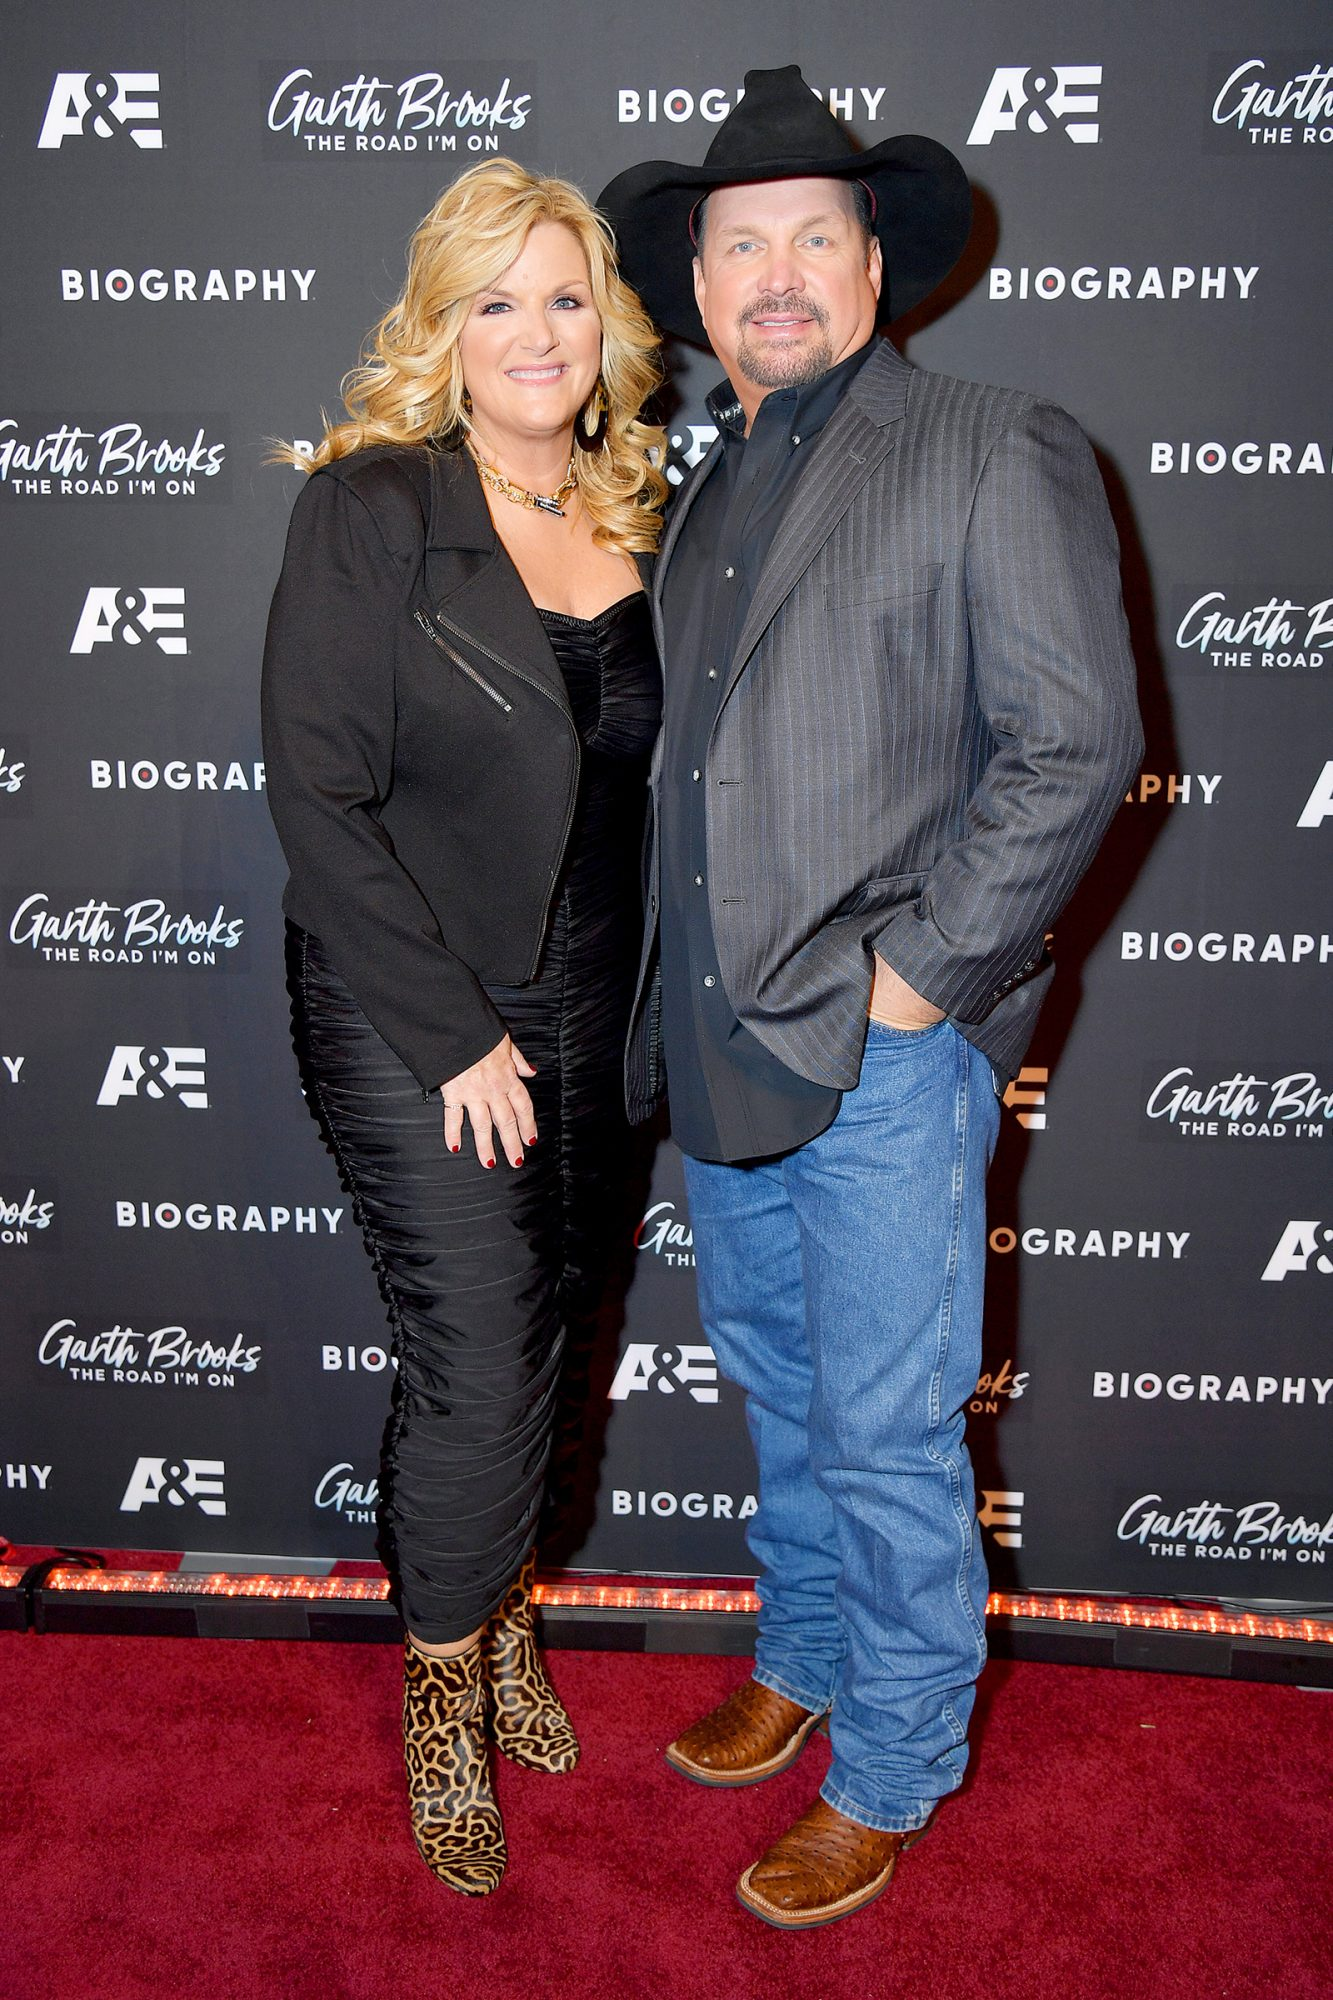 """Trisha Yearwood and Garth Brooks attend the """"Garth Brooks: The Road I'm On"""" Biography Celebration at The Bowery Hotel on November 18, 2019 in New York City."""